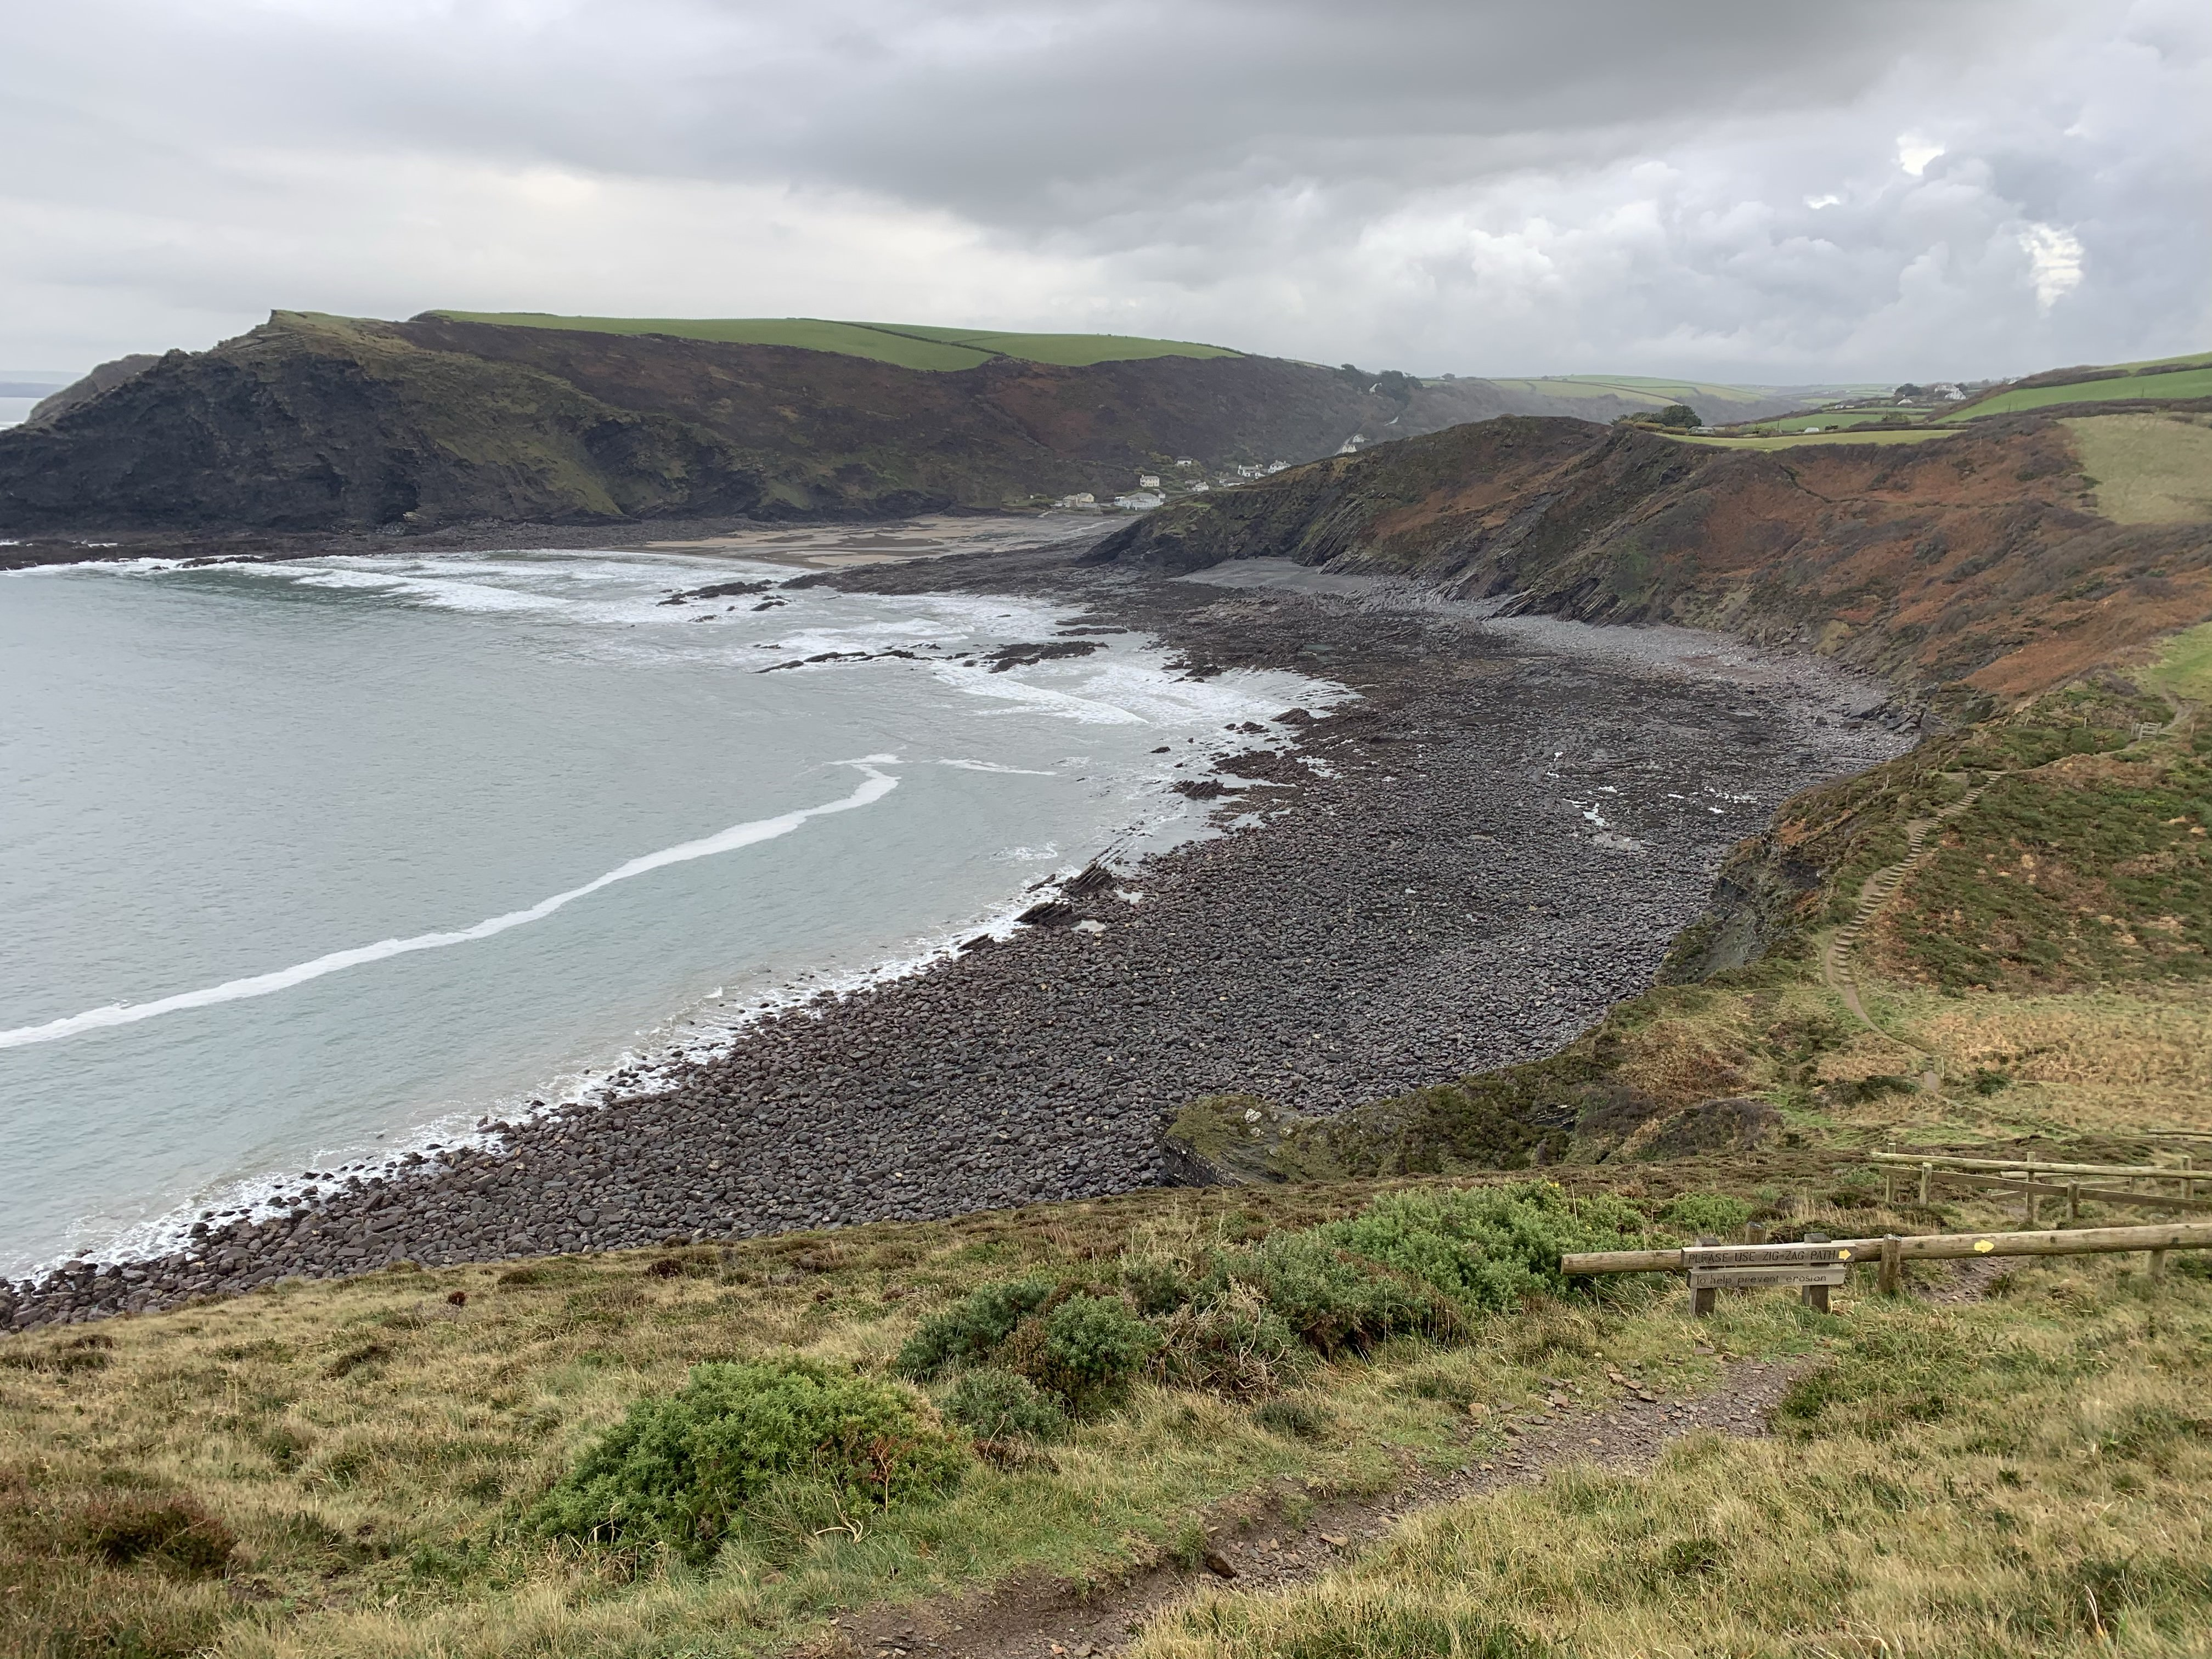 Looking back at Crackington Haven cove on The South West Coast Path walk to Boscastle